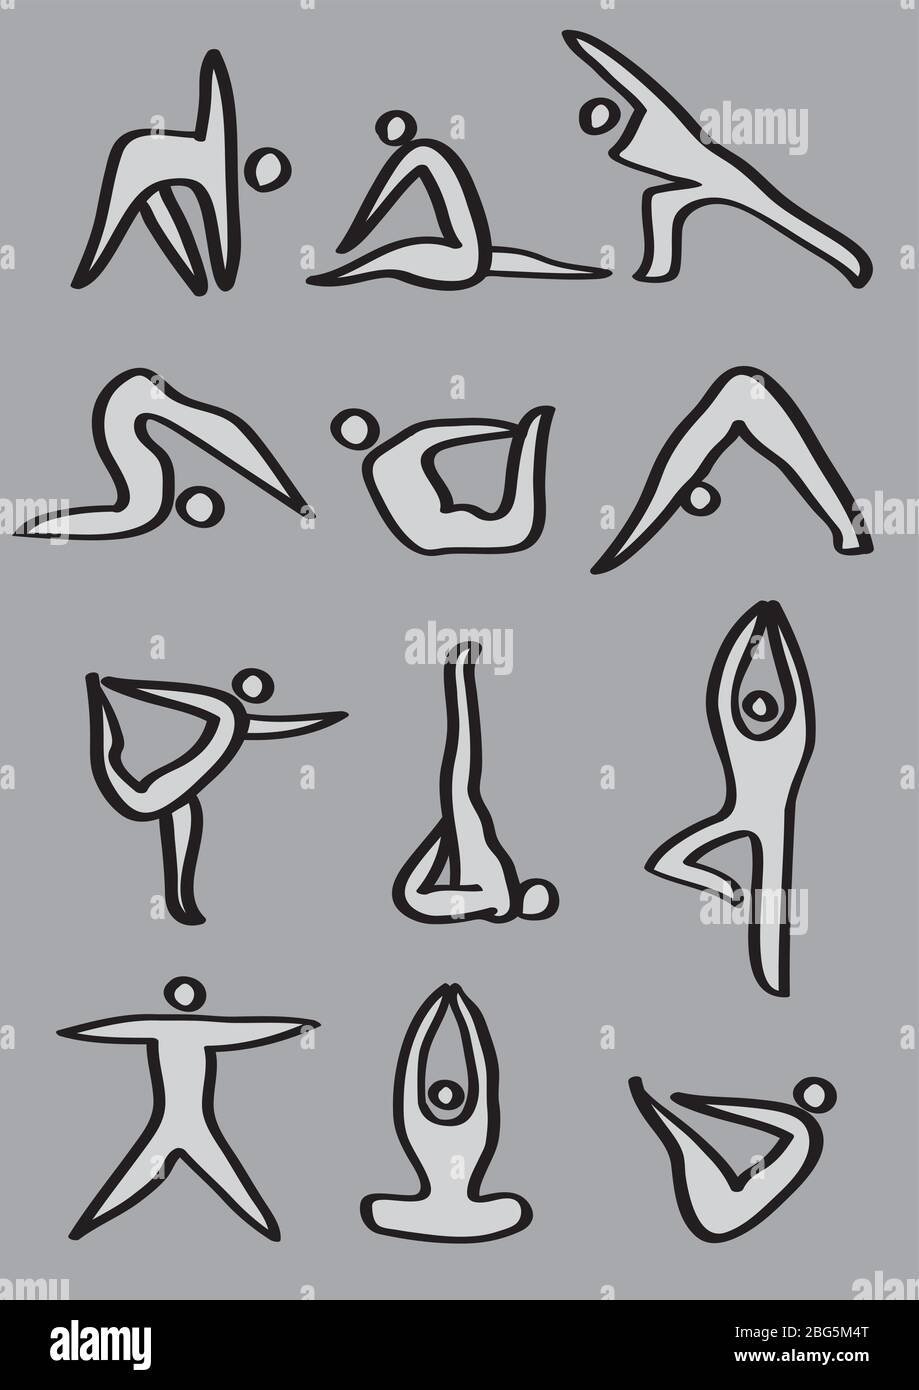 Simple icon man demonstrating different yoga poses. Vector icons